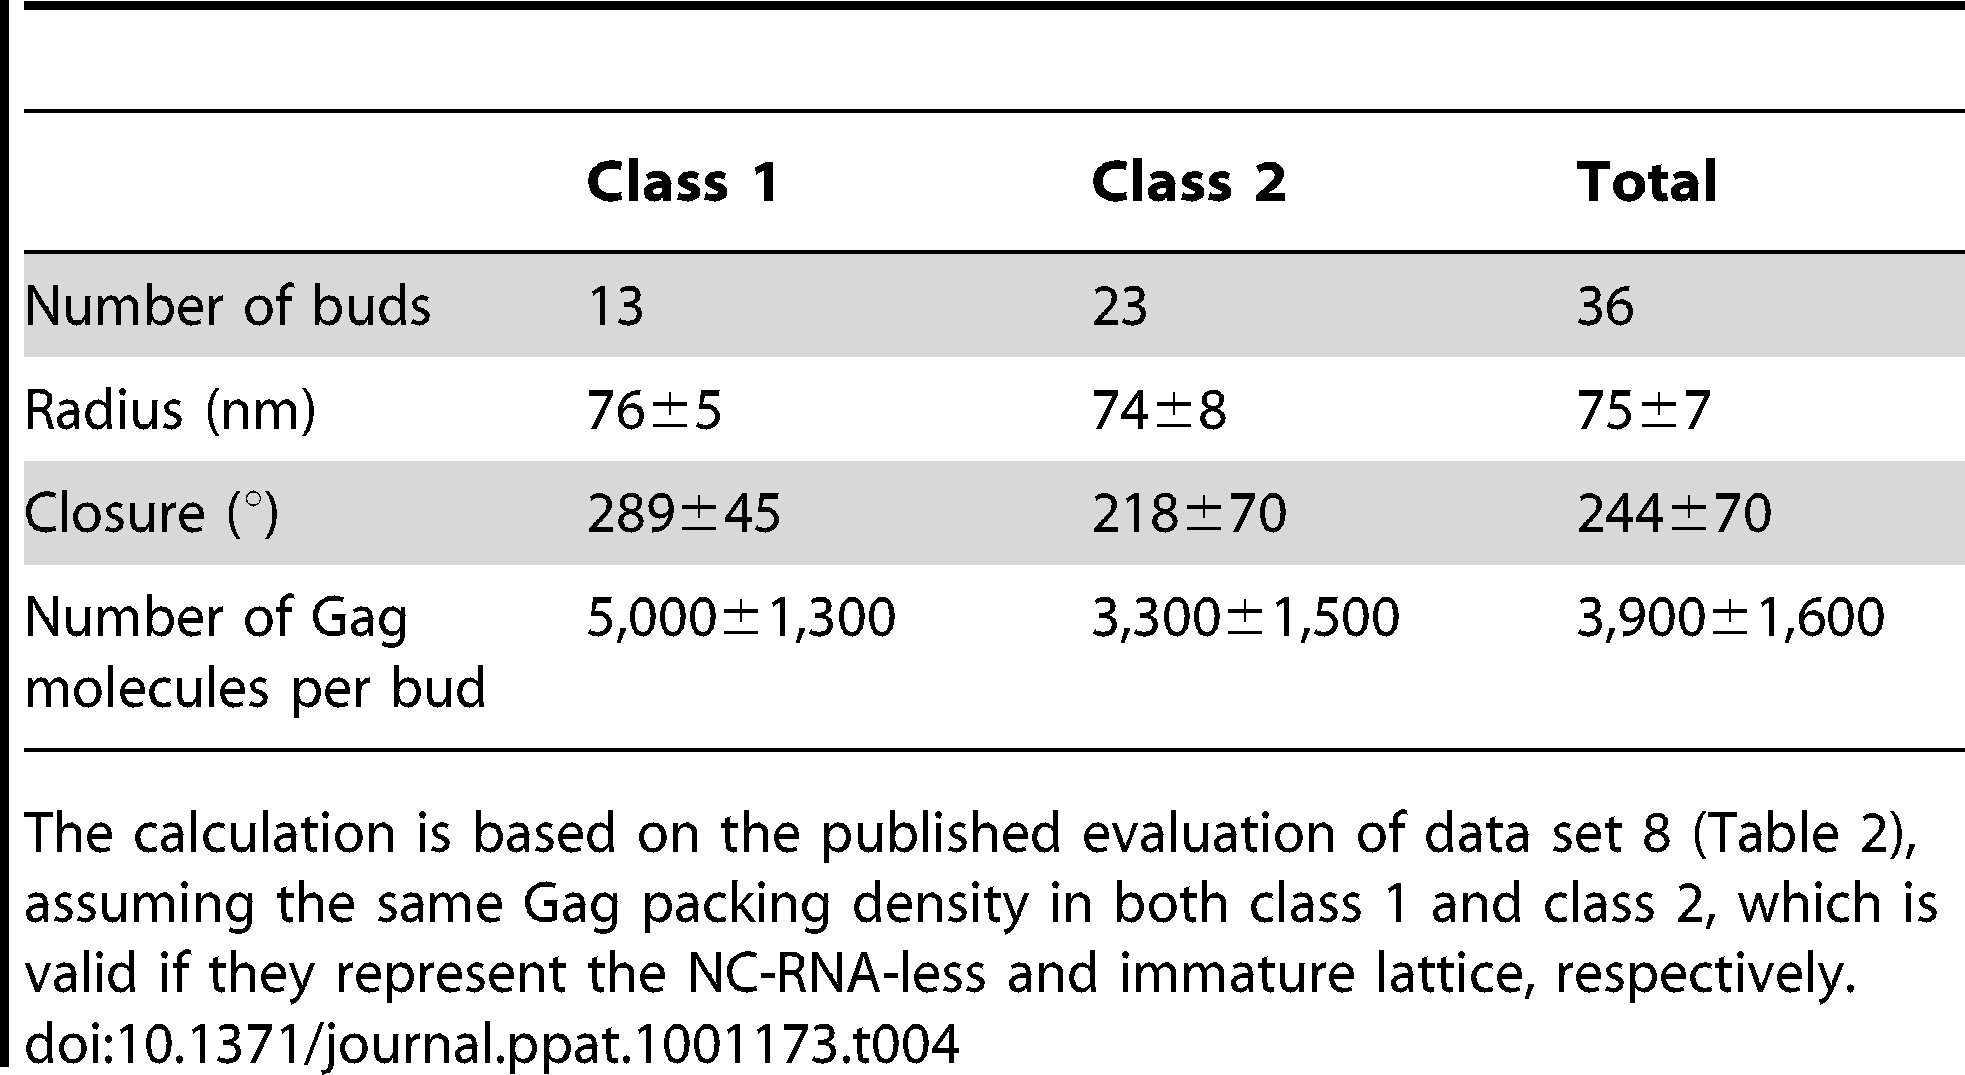 Properties of budding sites on MT4 cells according to Gag layer class.